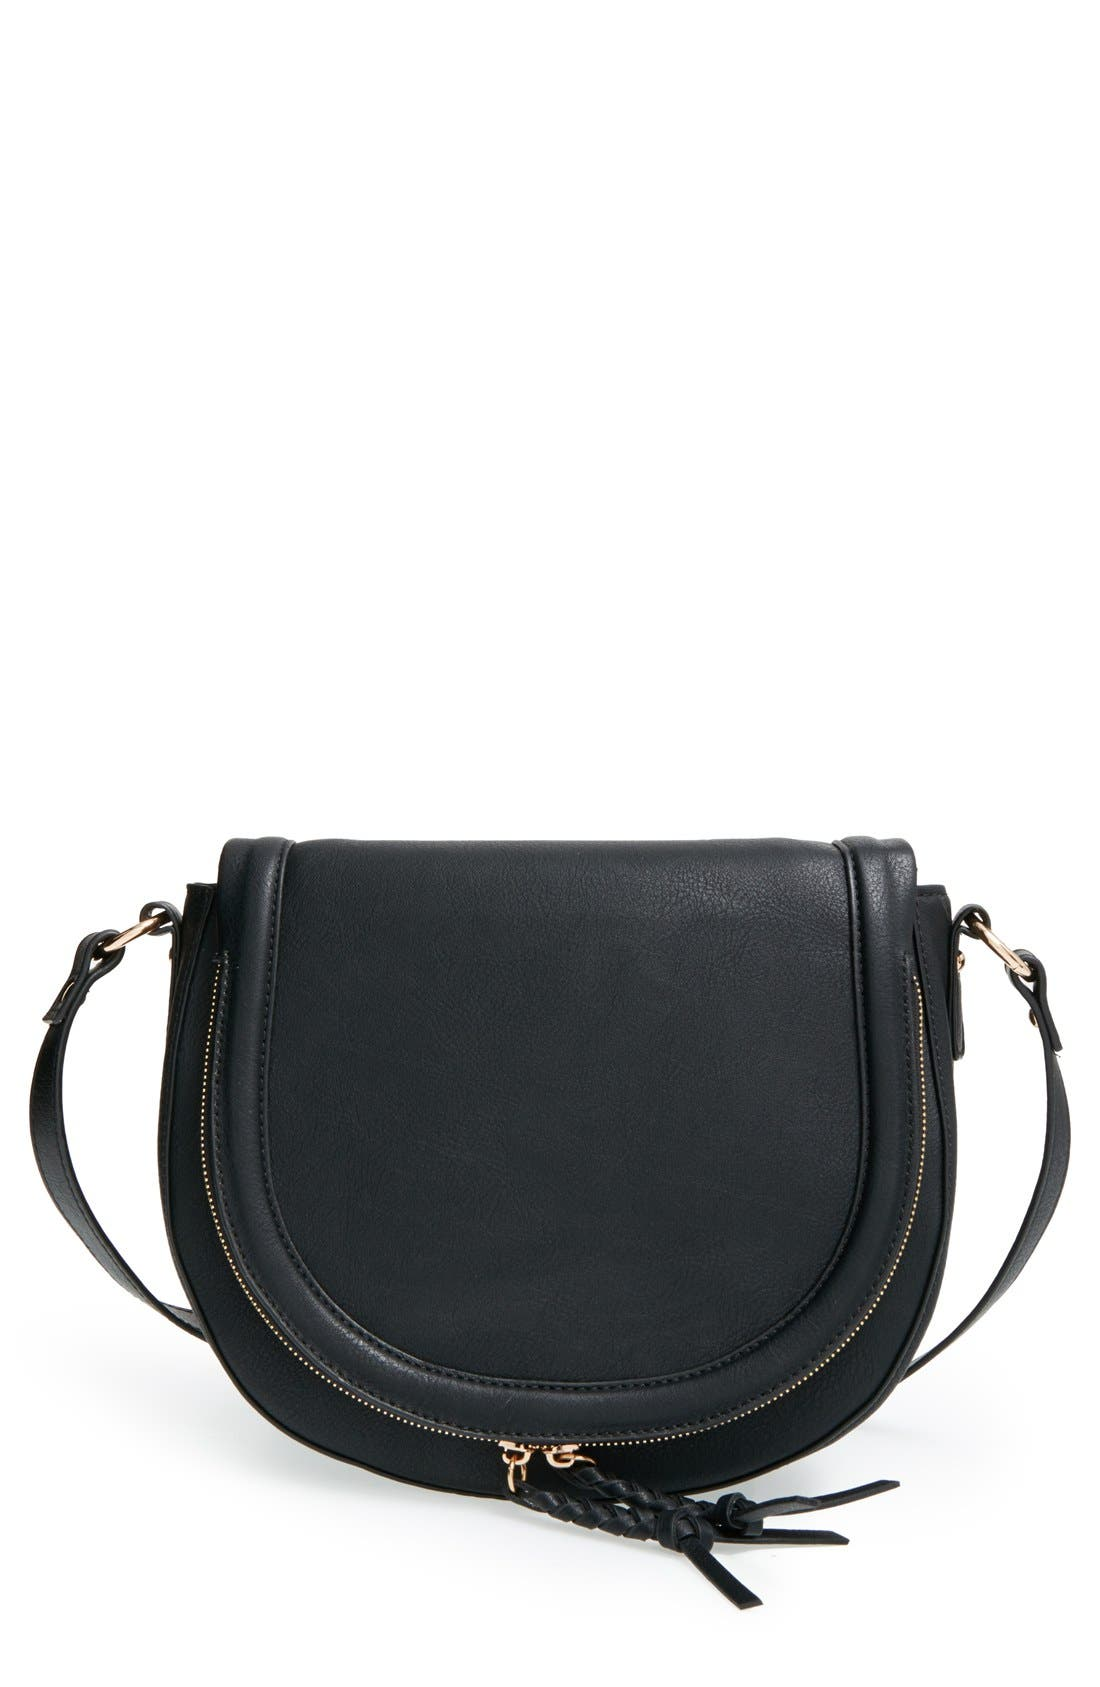 Alternate Image 1 Selected - Sole Society 'Thalia' Crossbody Bag